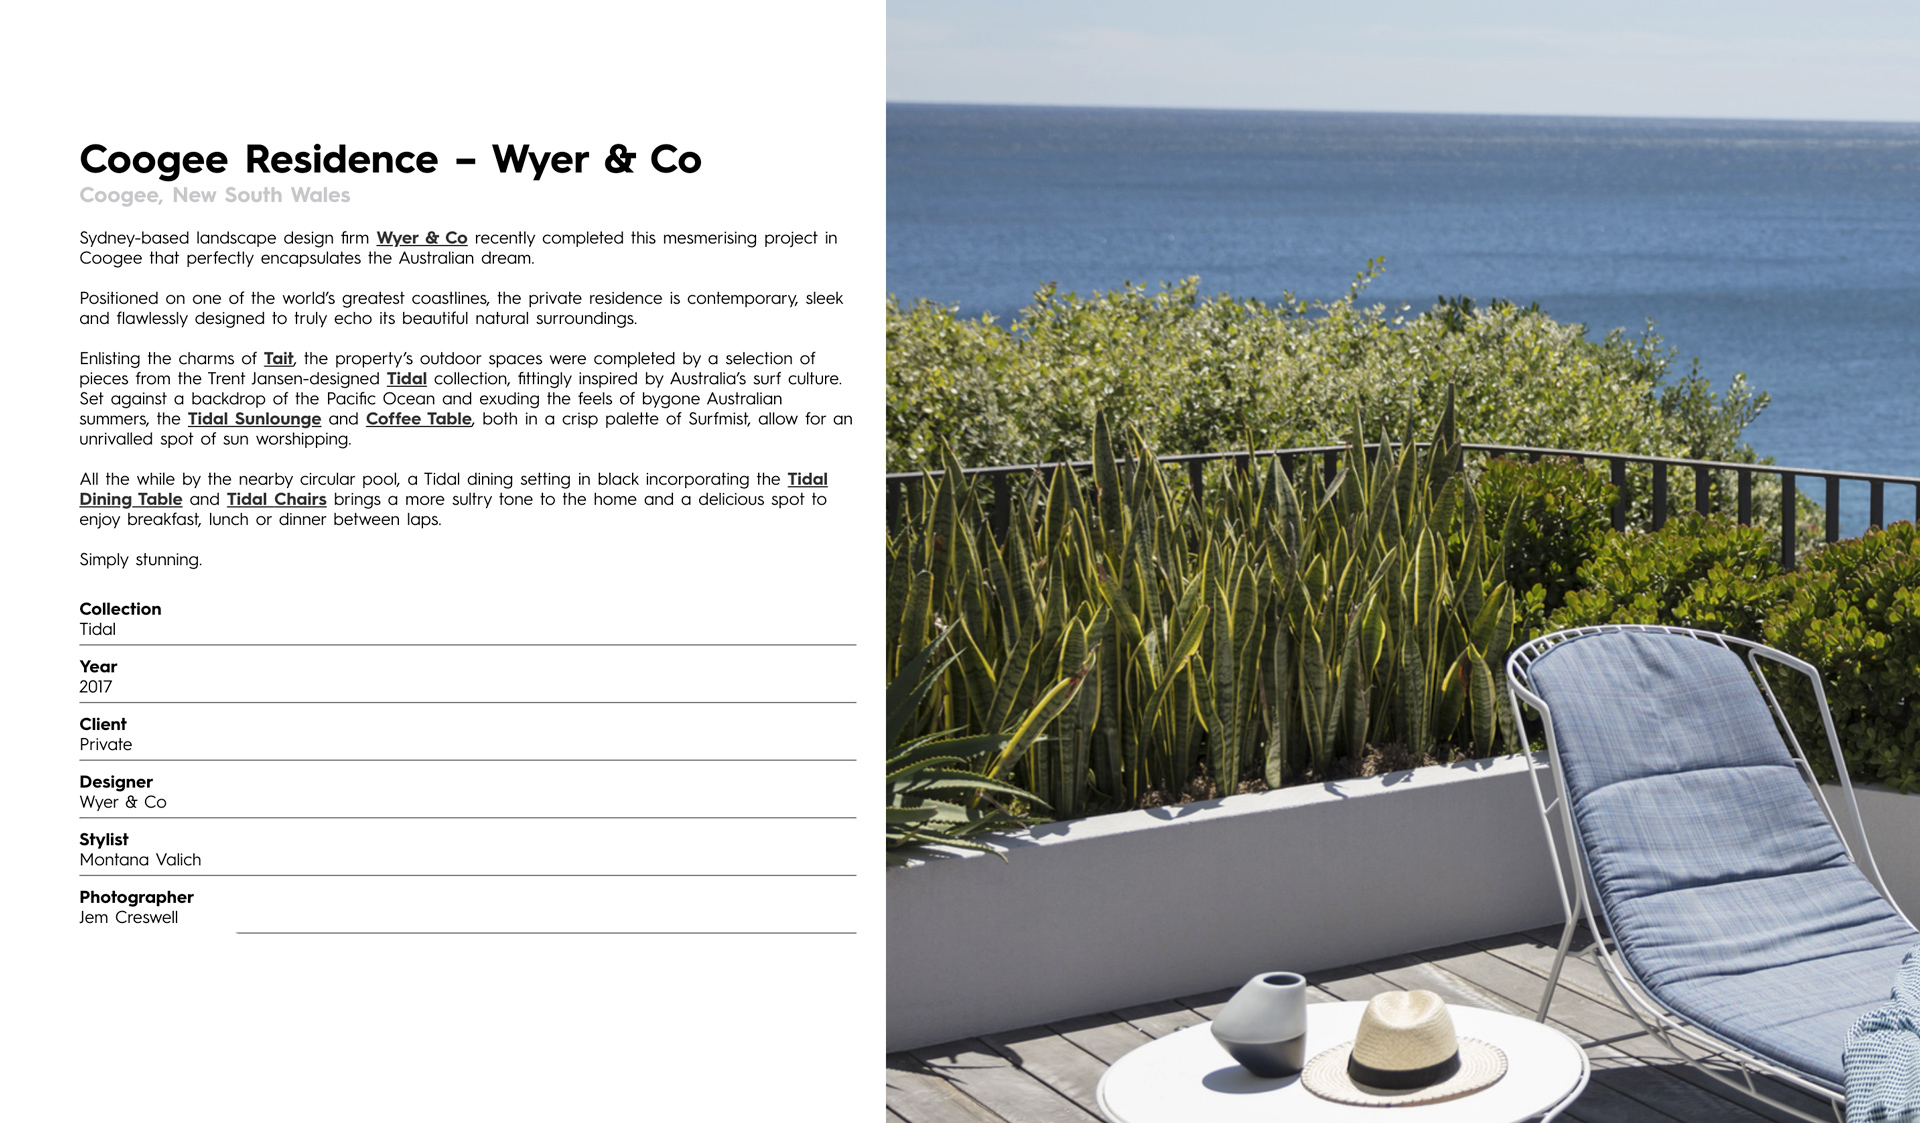 Coogee Residence – Wyer & Co